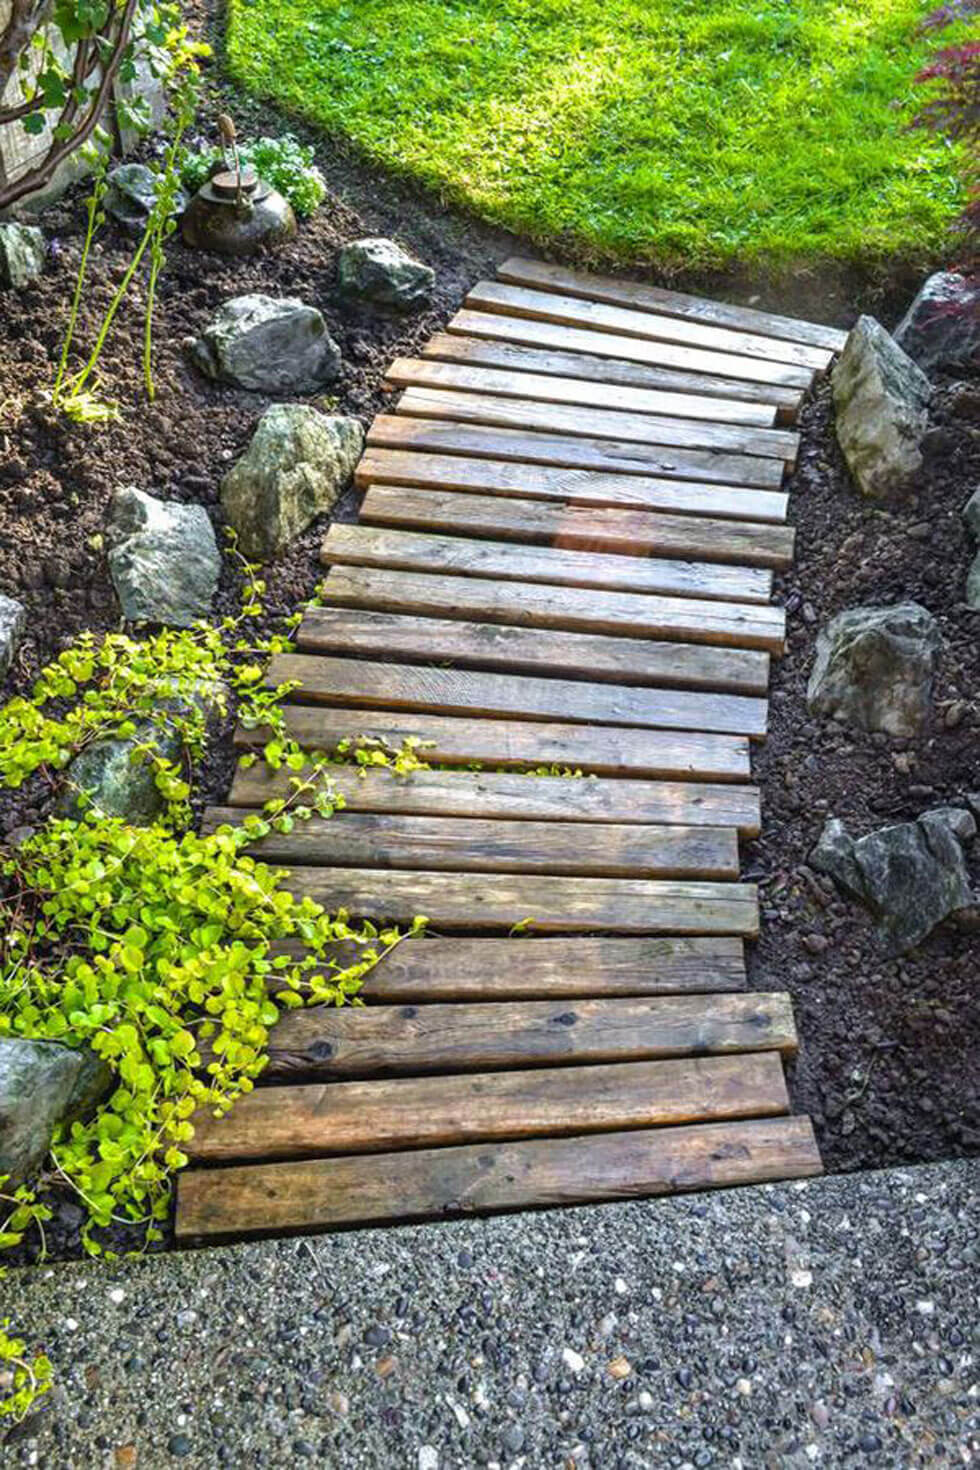 25 Best Garden Path and Walkway Ideas and Designs for 2020 on Backyard Walkway Ideas id=73571